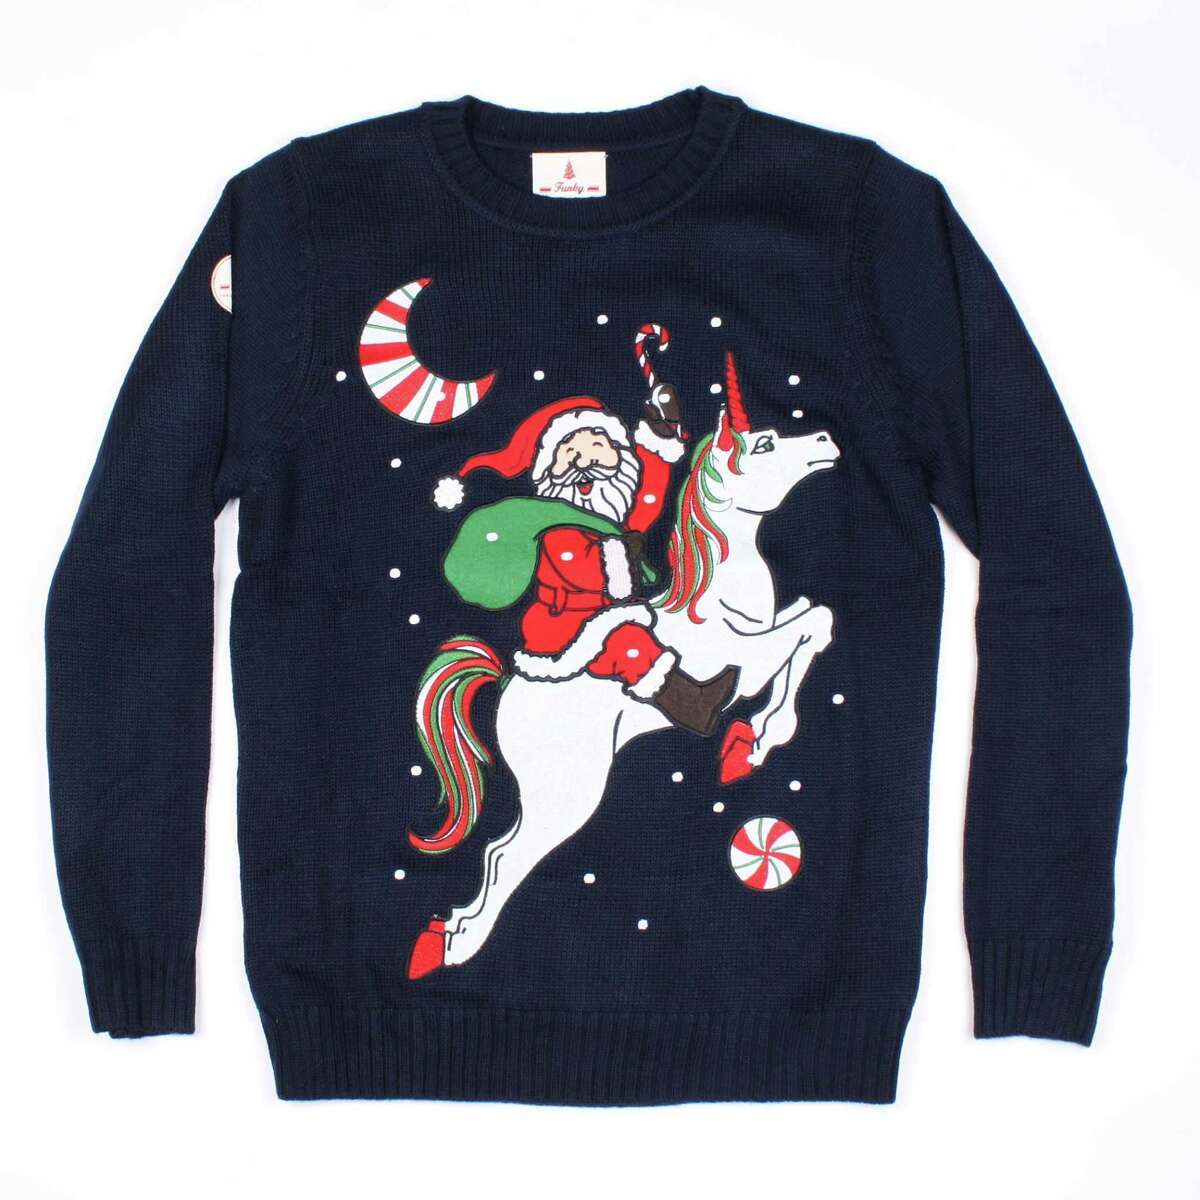 UglyChristmasSweaterParty.com is one of the earlier purveyors of the popular genre. Below and right, quirky designs from Kohl's.